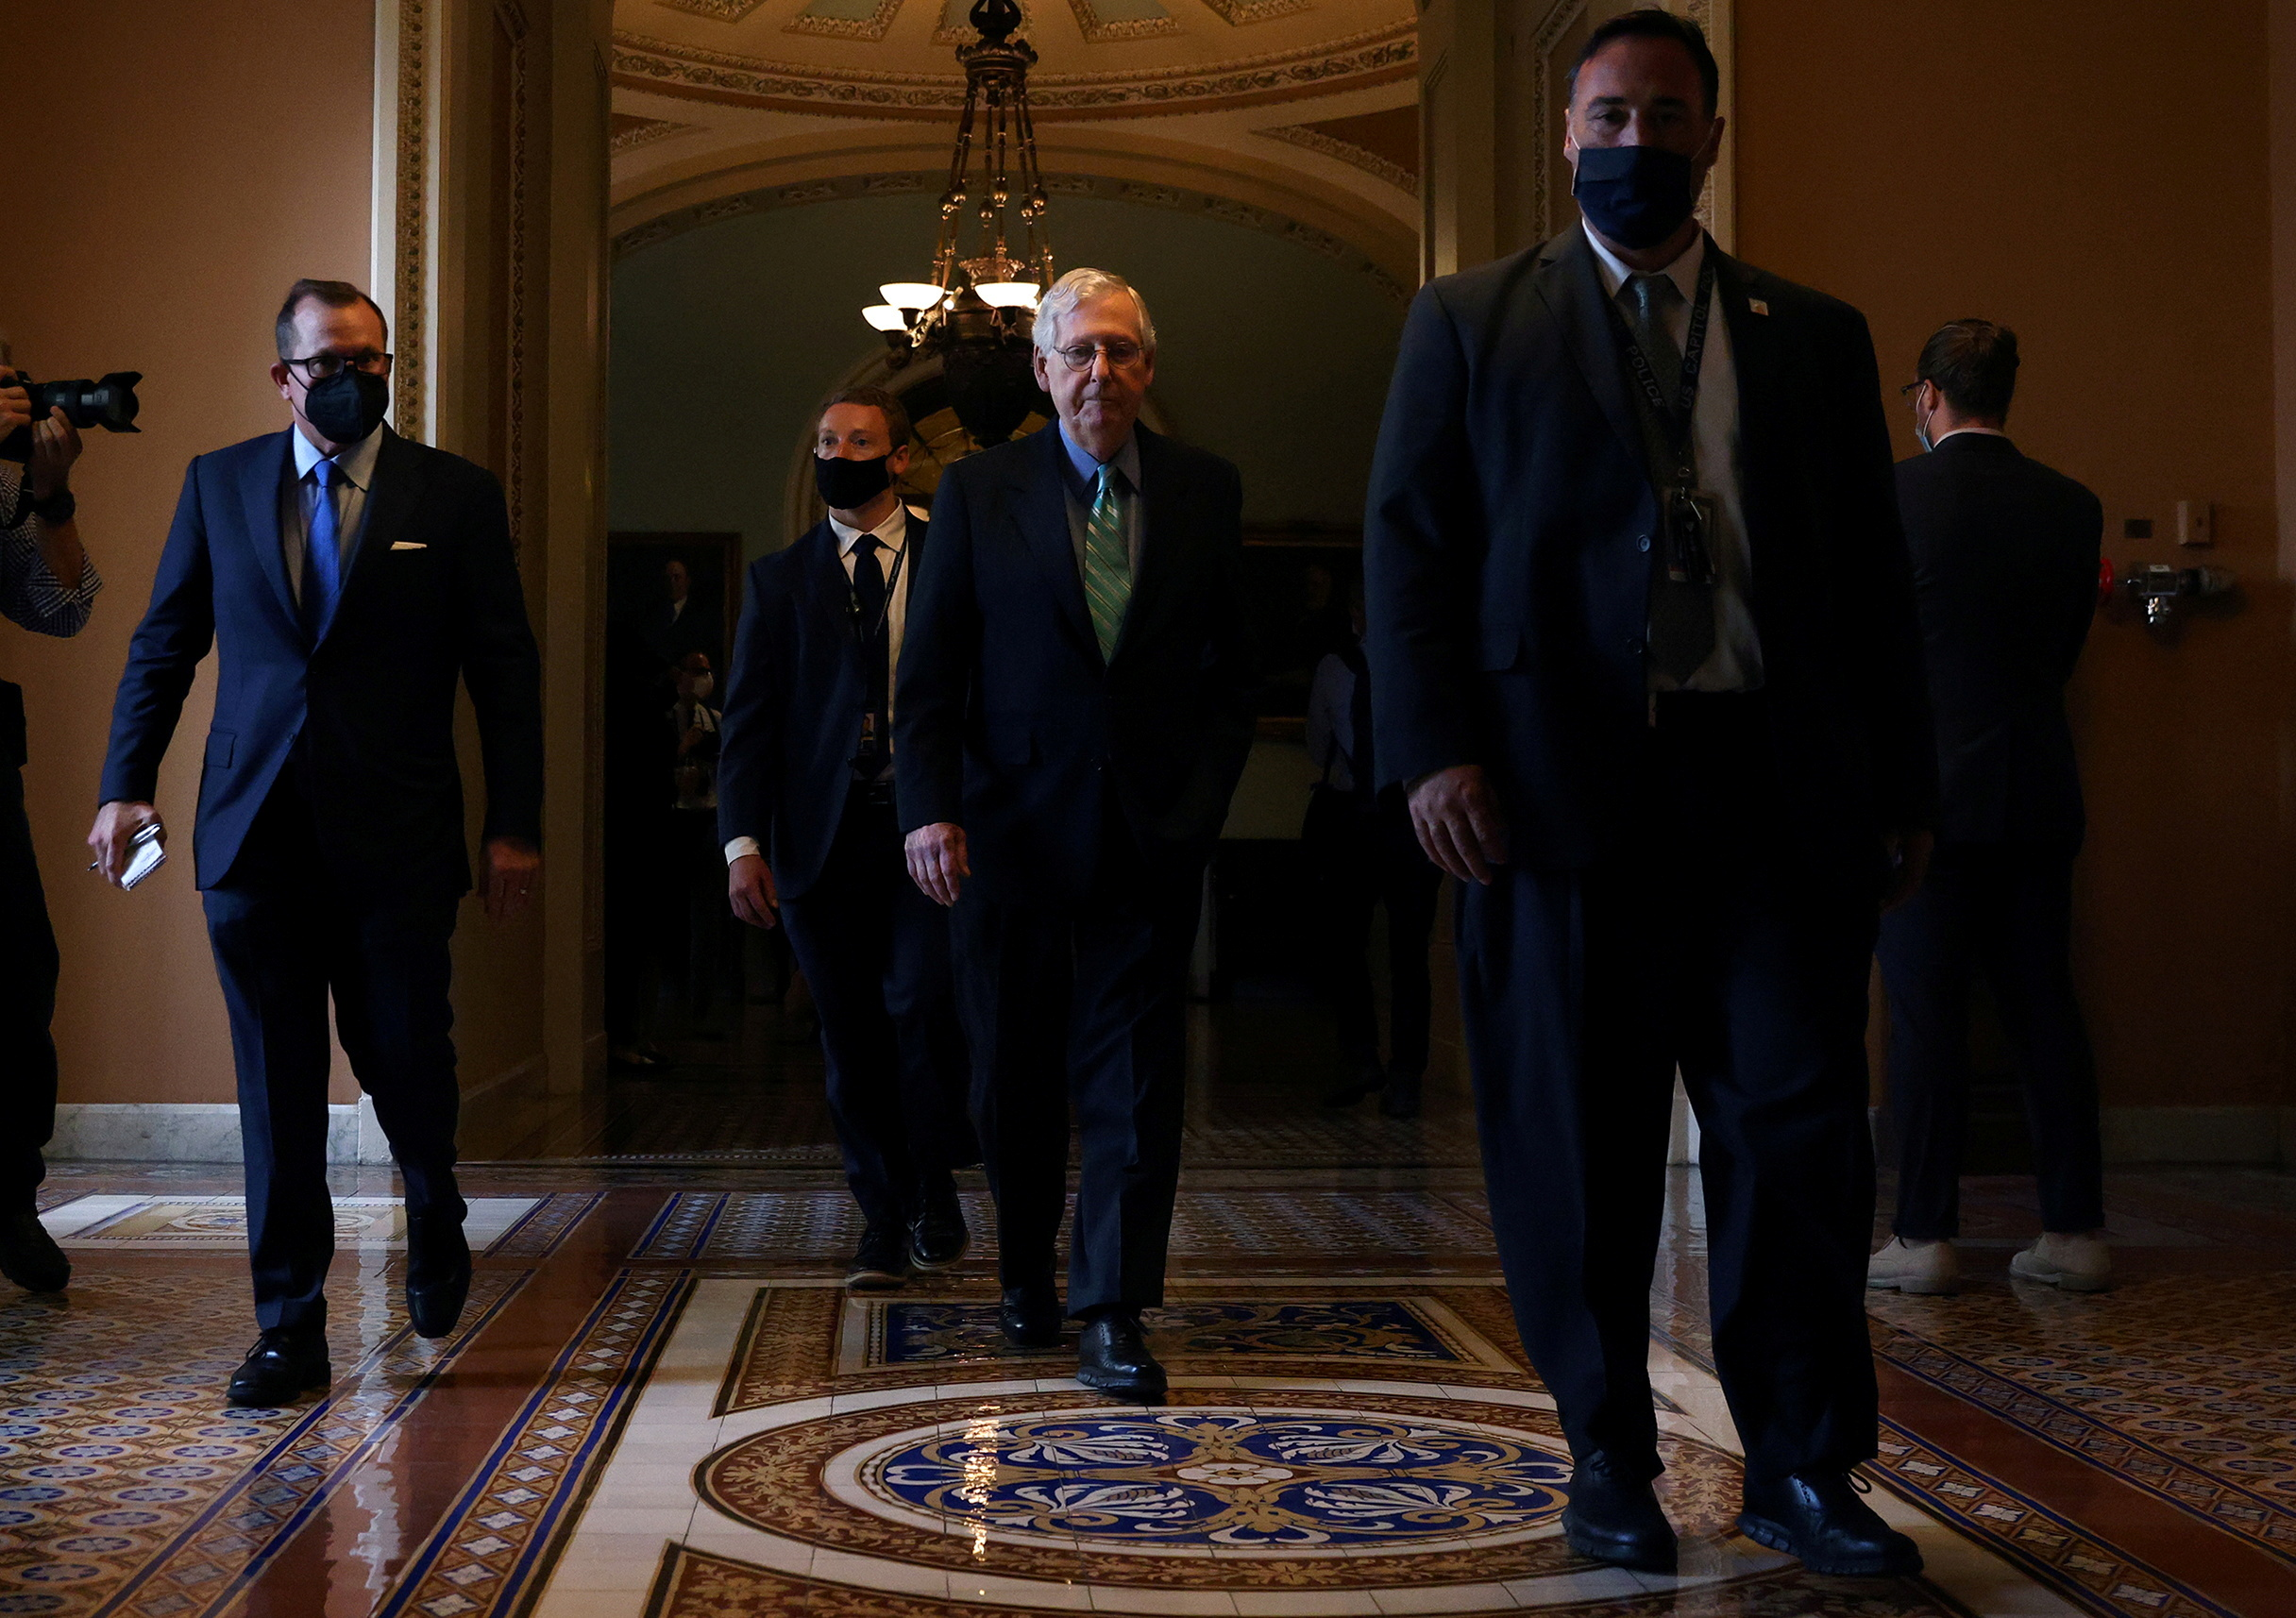 U.S. Senate Republican Leader Mitch McConnell (R-KY) walks to his office after it was announced that the U.S. Senate reached a deal to pass a $480 billion increase in Treasury Department borrowing authority, at the U.S. Capitol in Washington, U.S., October 7, 2021. REUTERS/Leah Millis